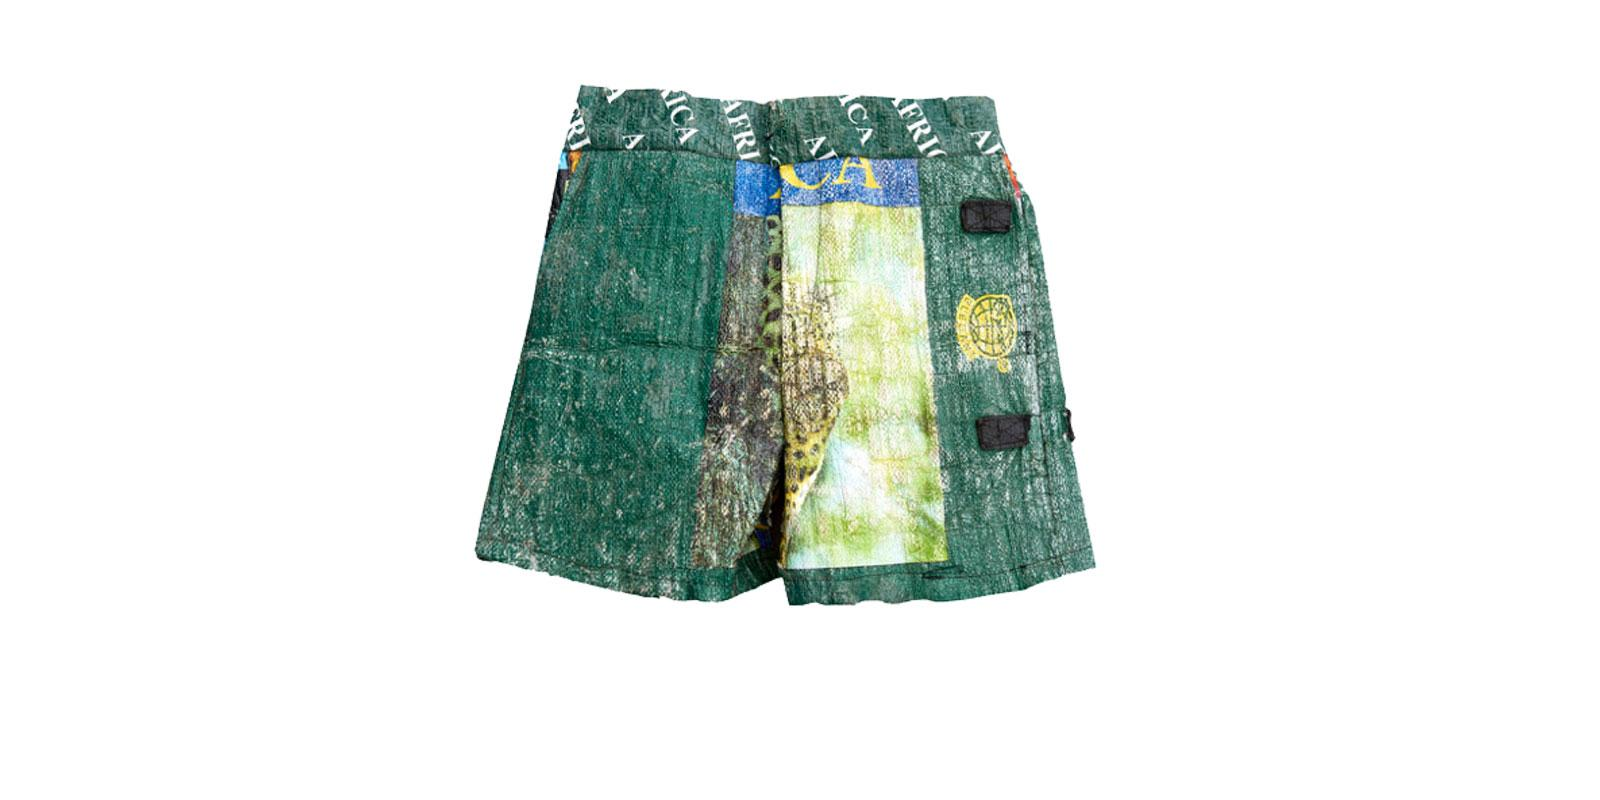 Shorts made out of trash